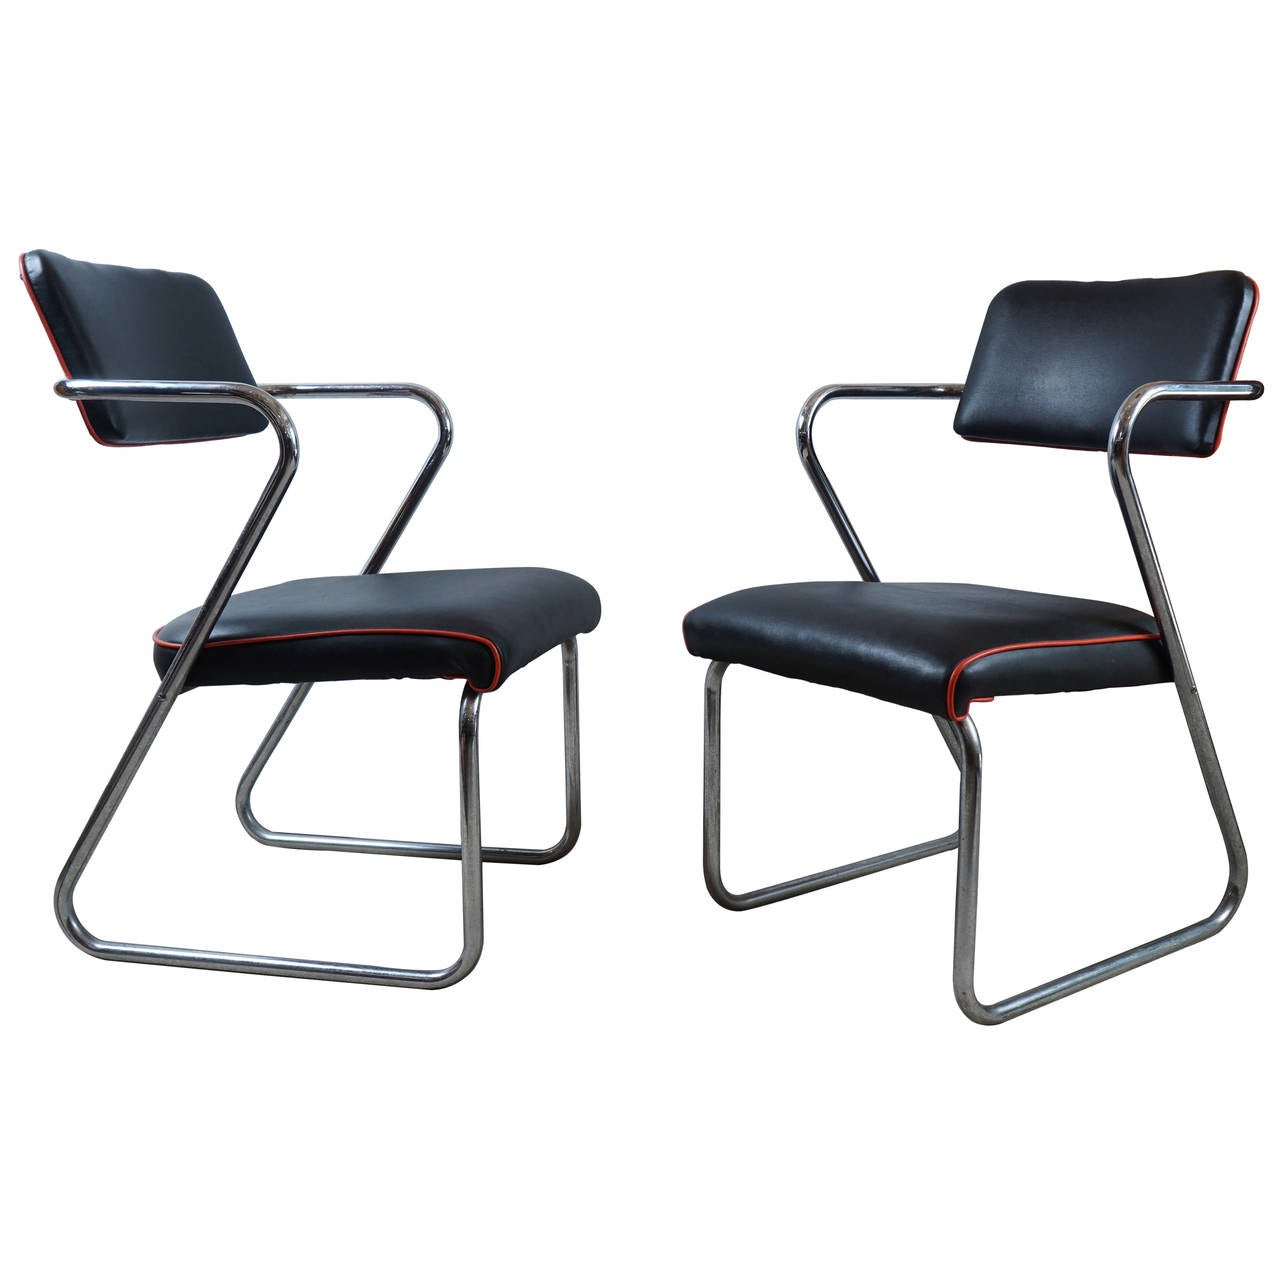 Pair Of Royalchrome Z Chairs By Gilbert Rohde For Royal Metal Co. For Sale